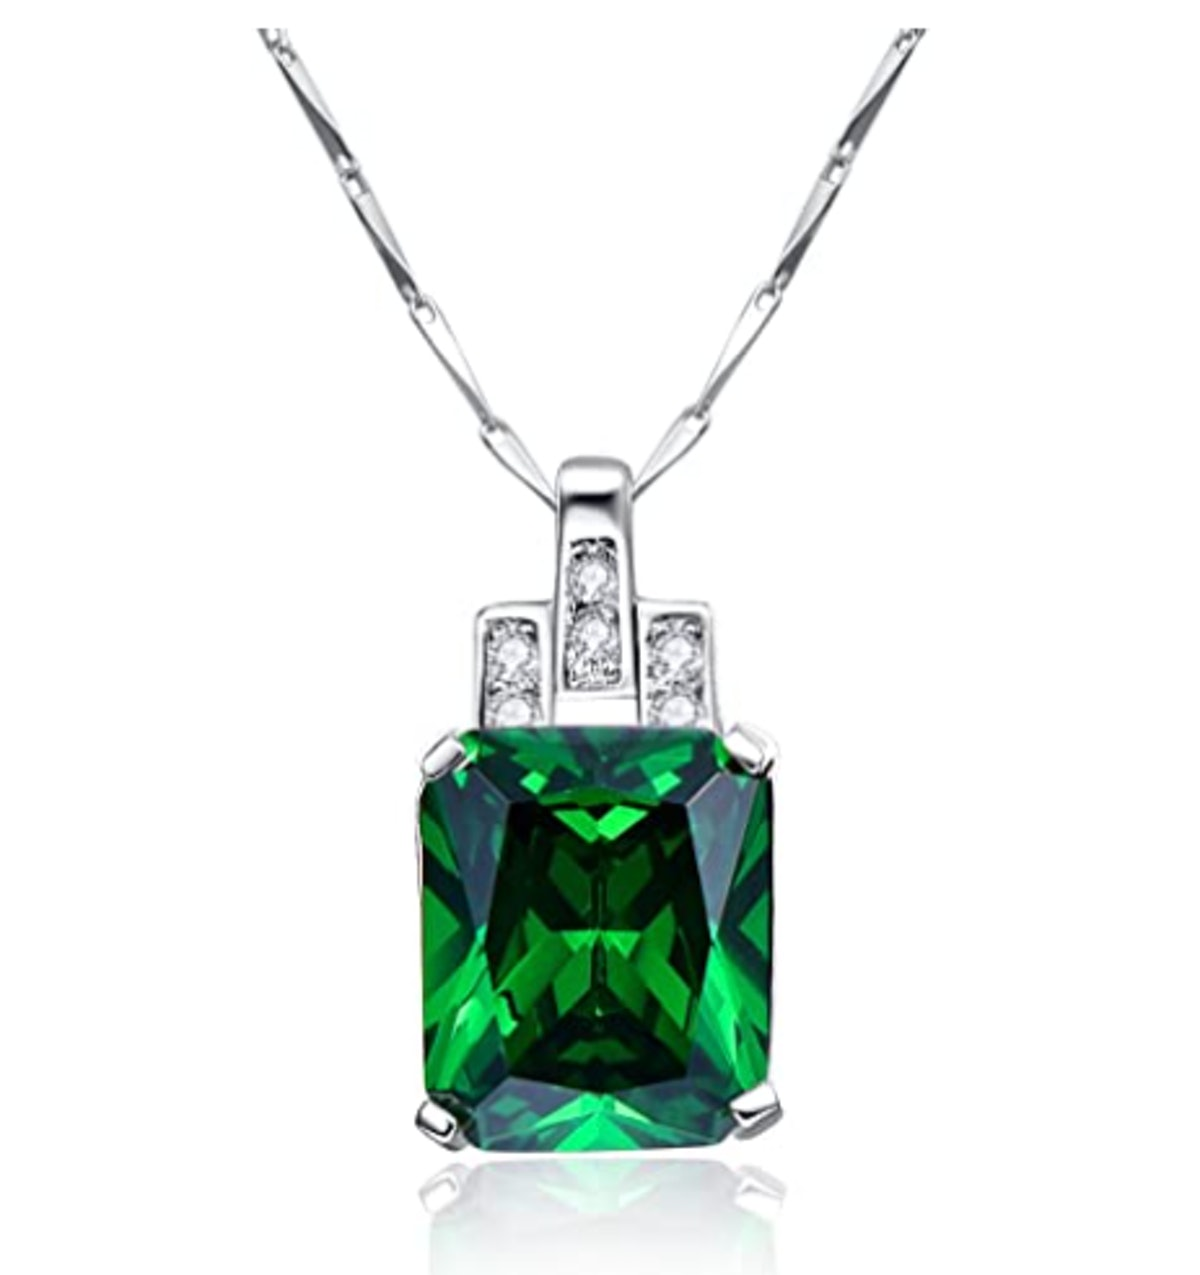 BONLAVIE Womens Pendant Necklace with Created Emerald Cubic Zirconia CZ Birthstone 925 Sterling Silver Chain Pendant Christmas Romantic Date Gift